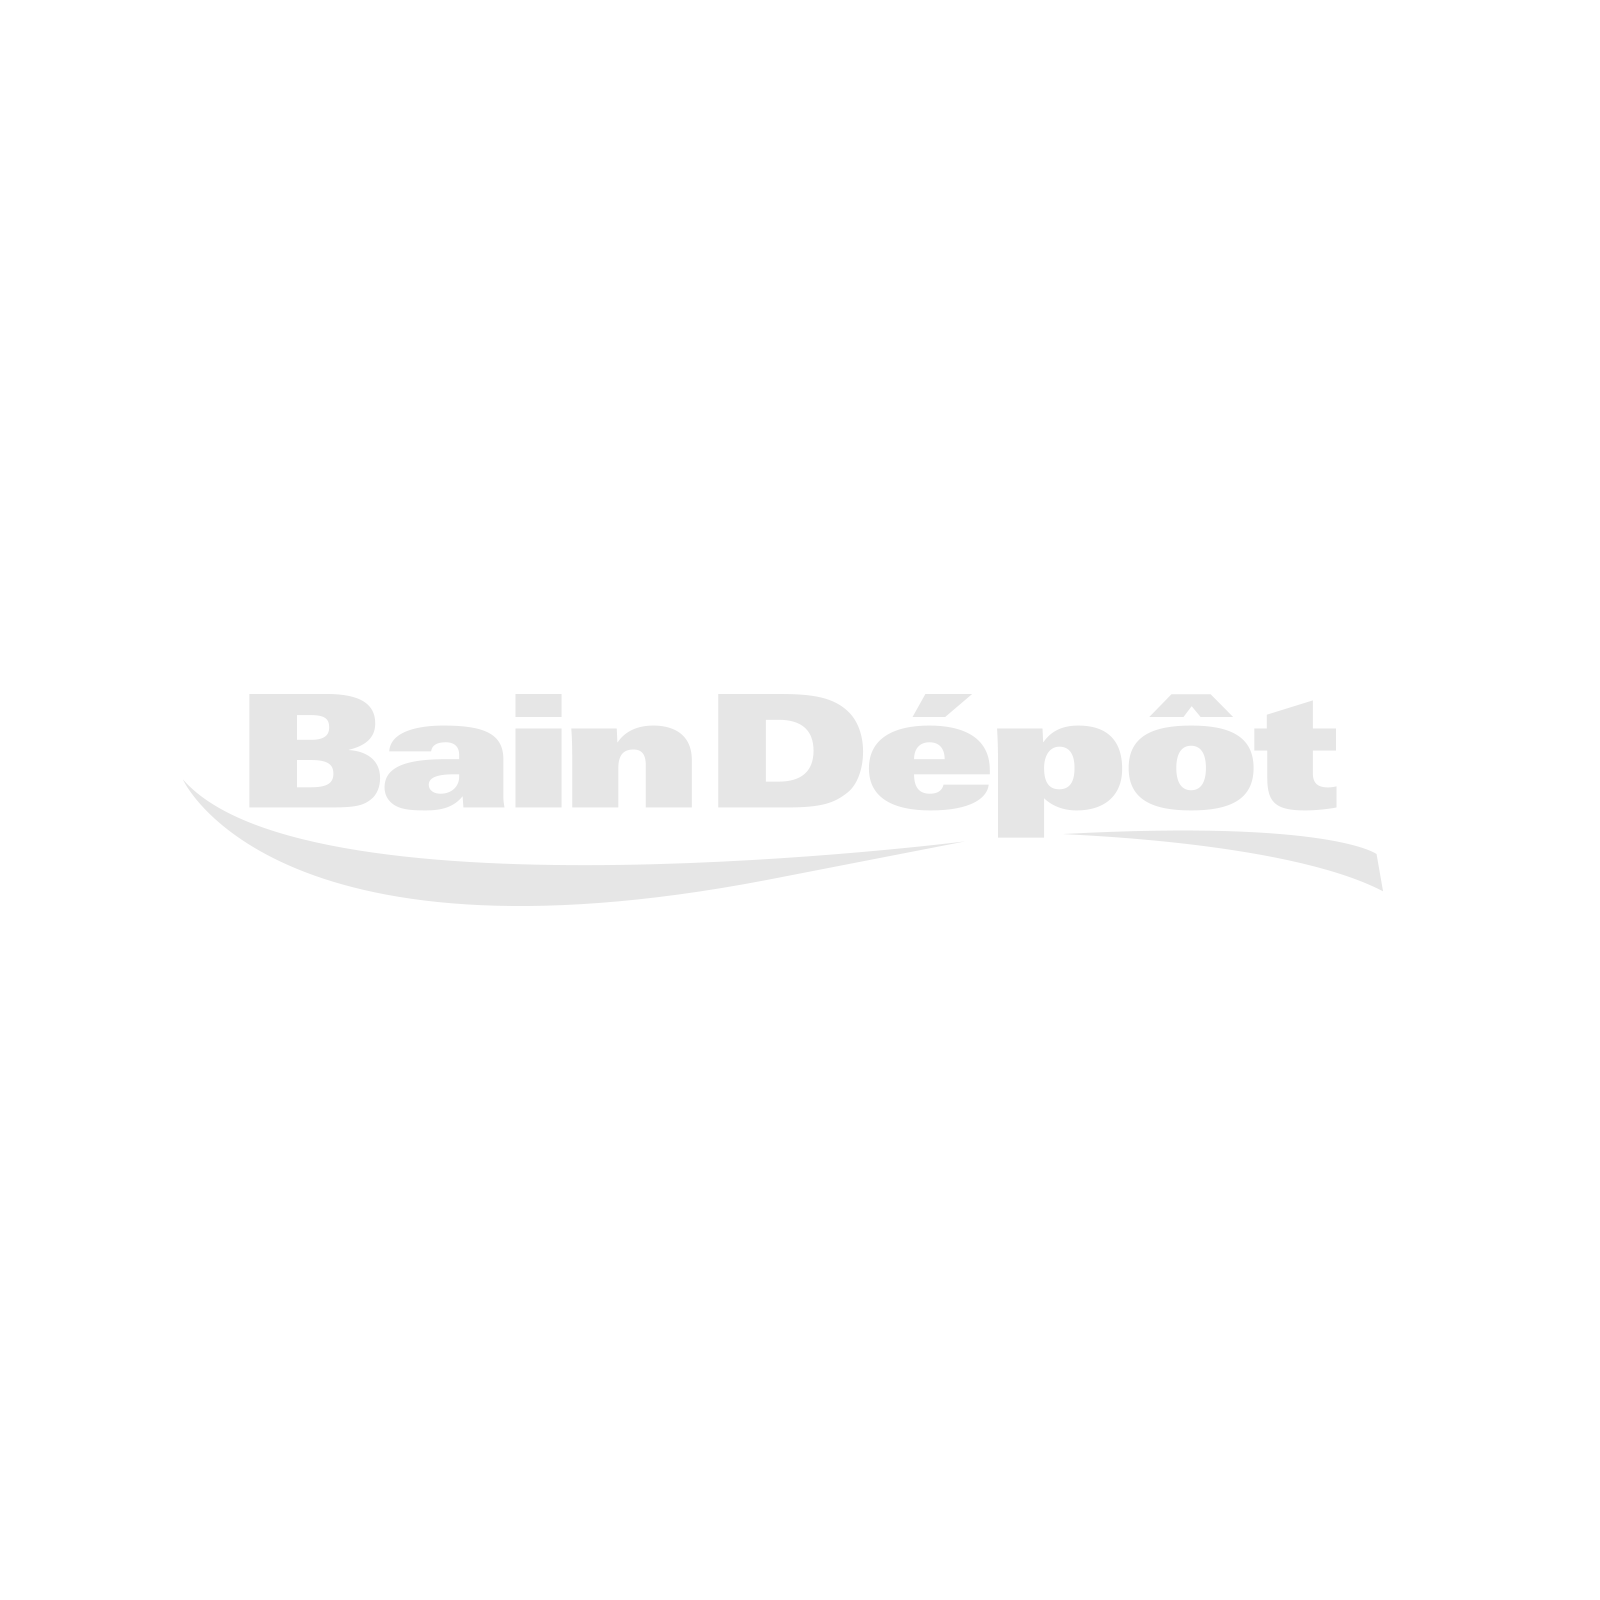 WARMUP - FOIL for carpet, laminate and wood floors covering 40 square feet